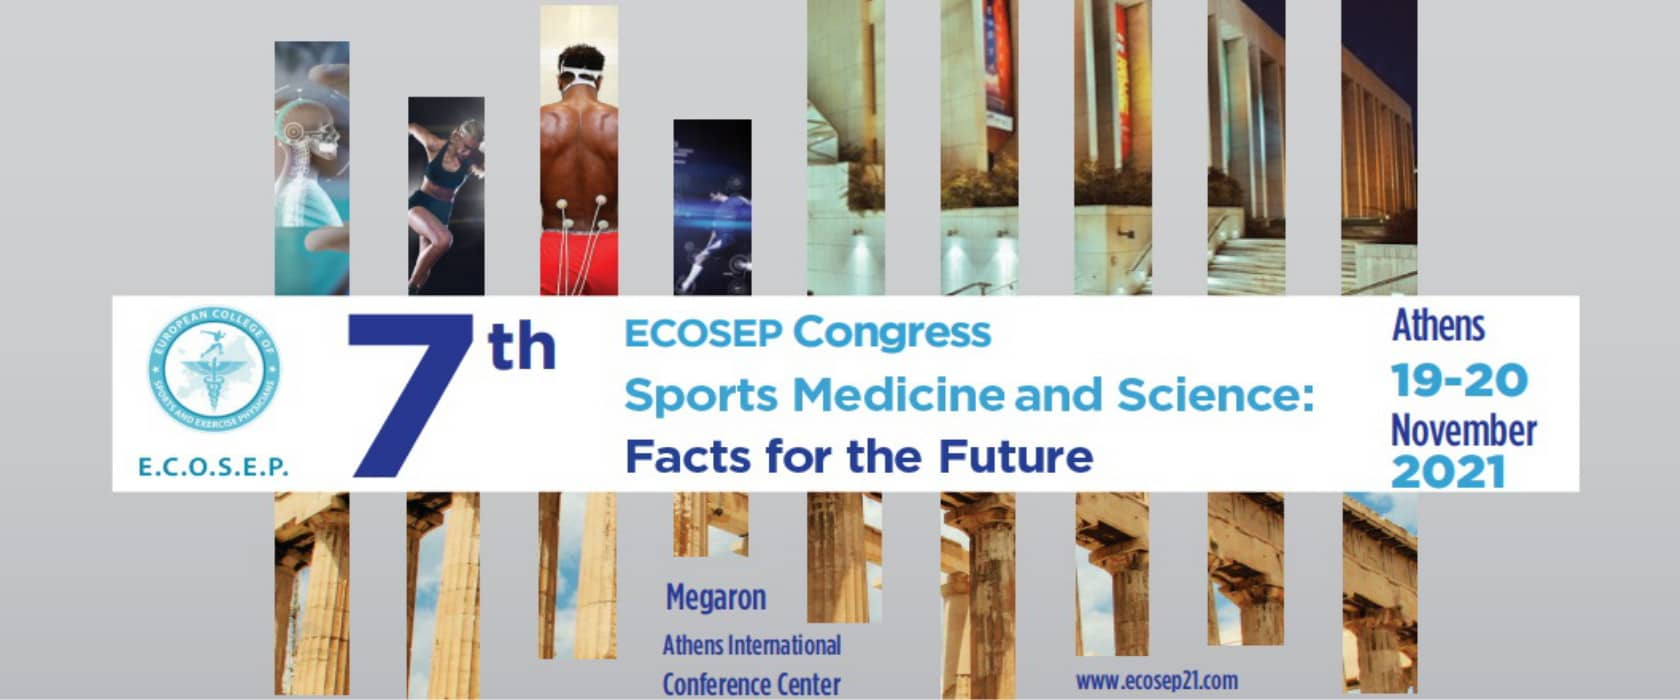 7th ECOSEP Congress